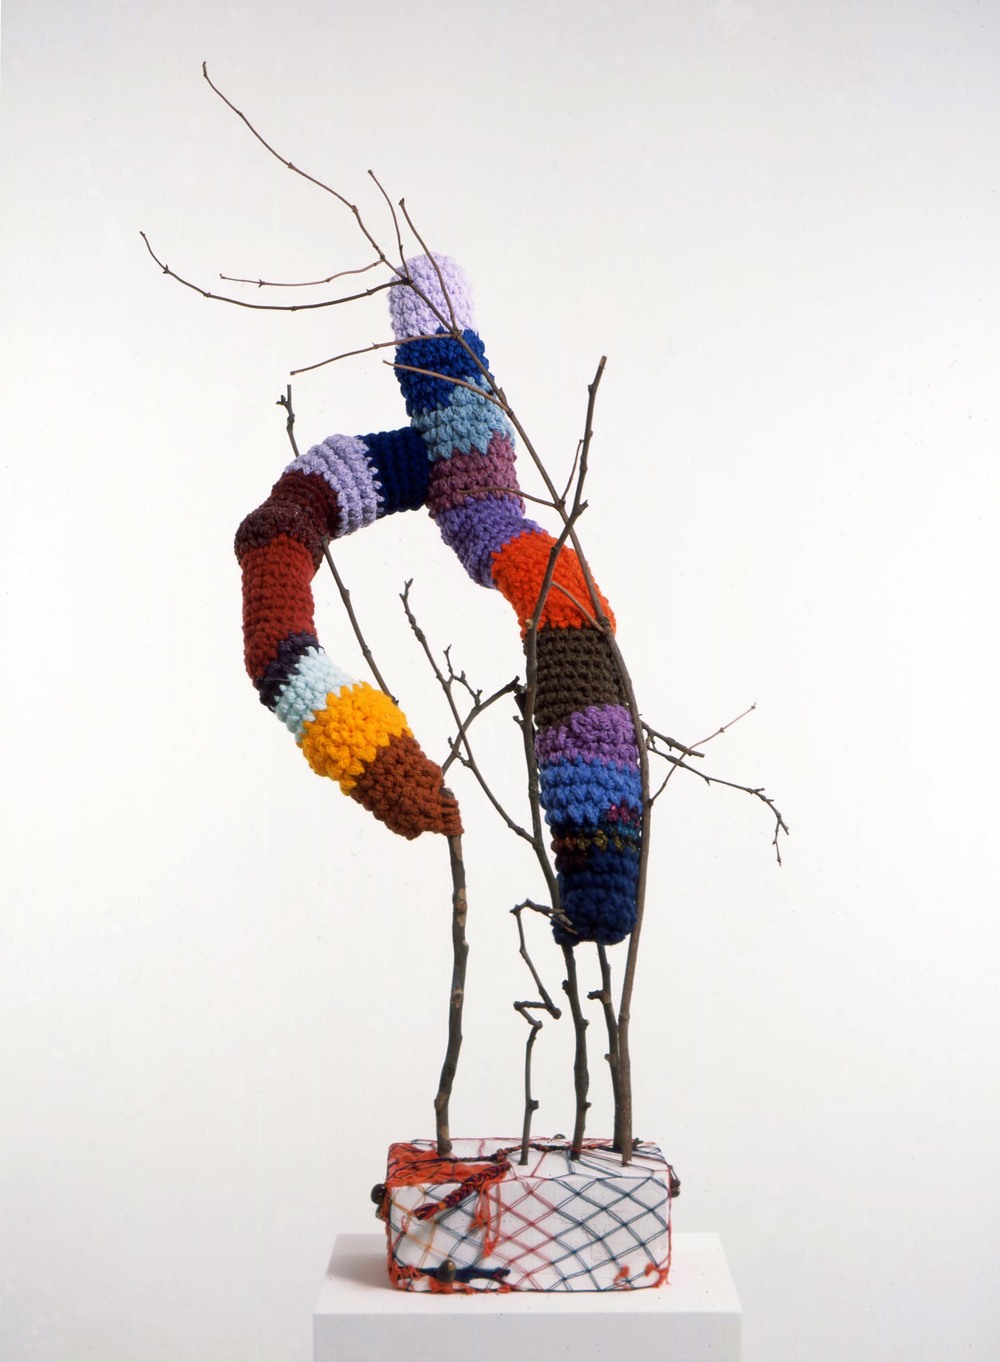 Gewächs 2005 plaster, wool, wood, stones, fabric, plastic & thread 131x80x64cm